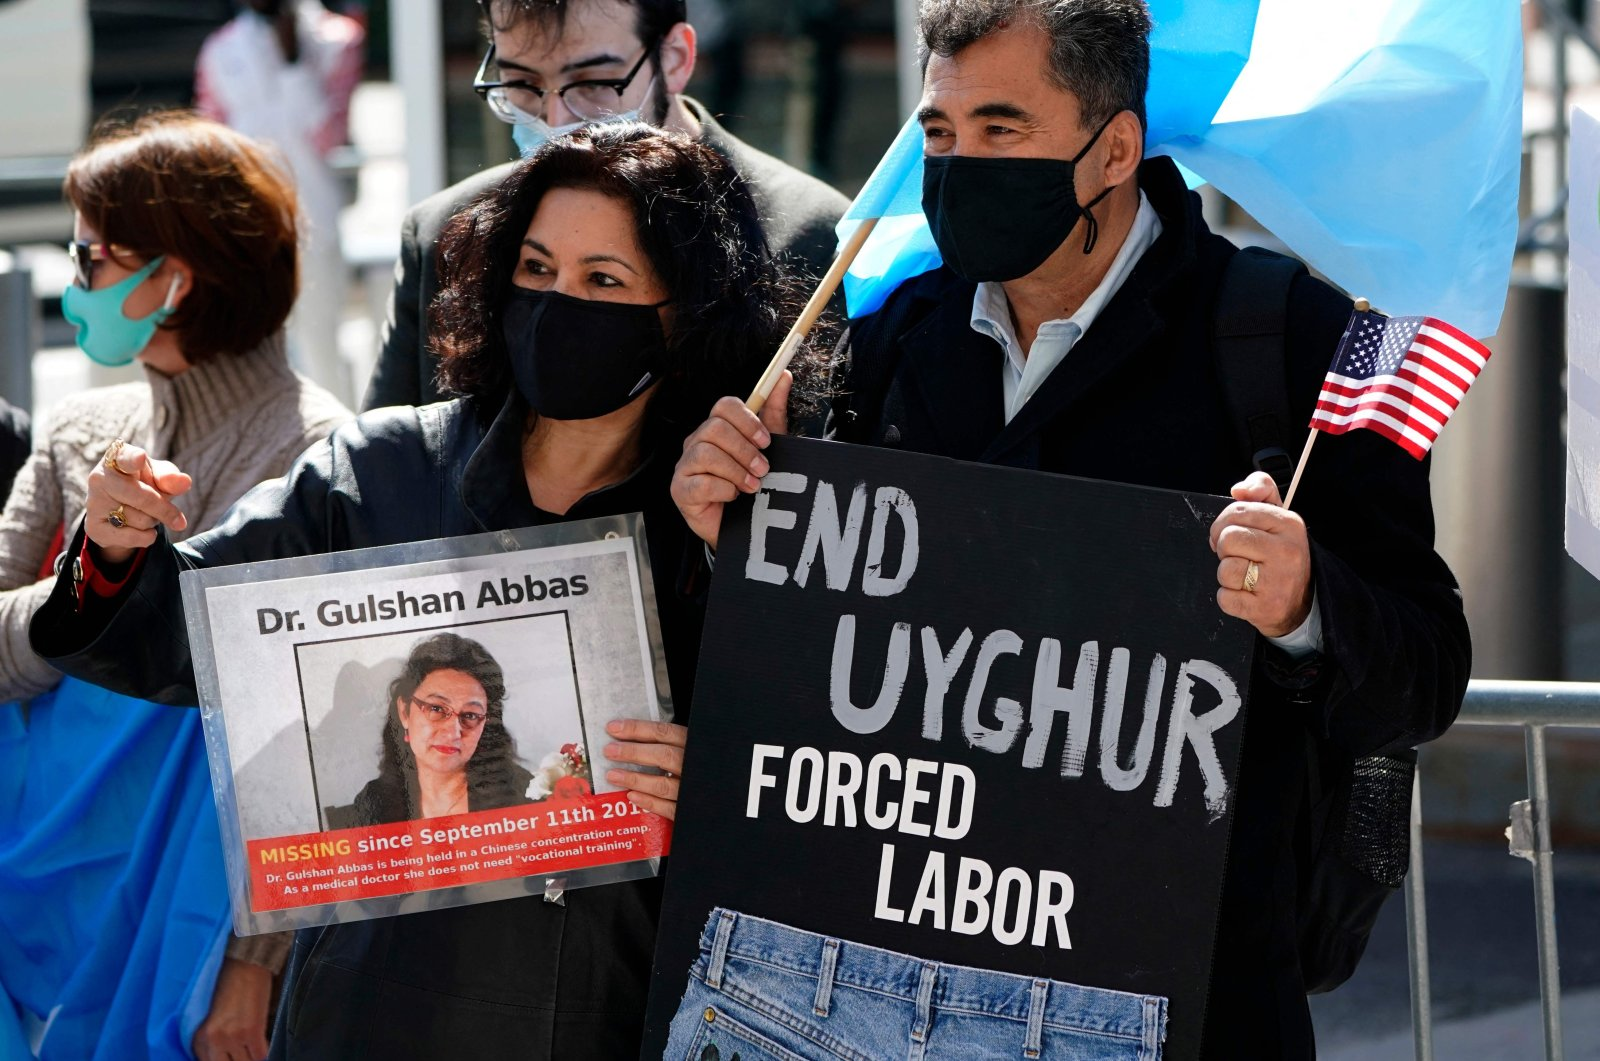 Protestors hold signs as they gather during a rally for Uyghur Freedom in New York City on March 22, 2021. (AFP Photo)